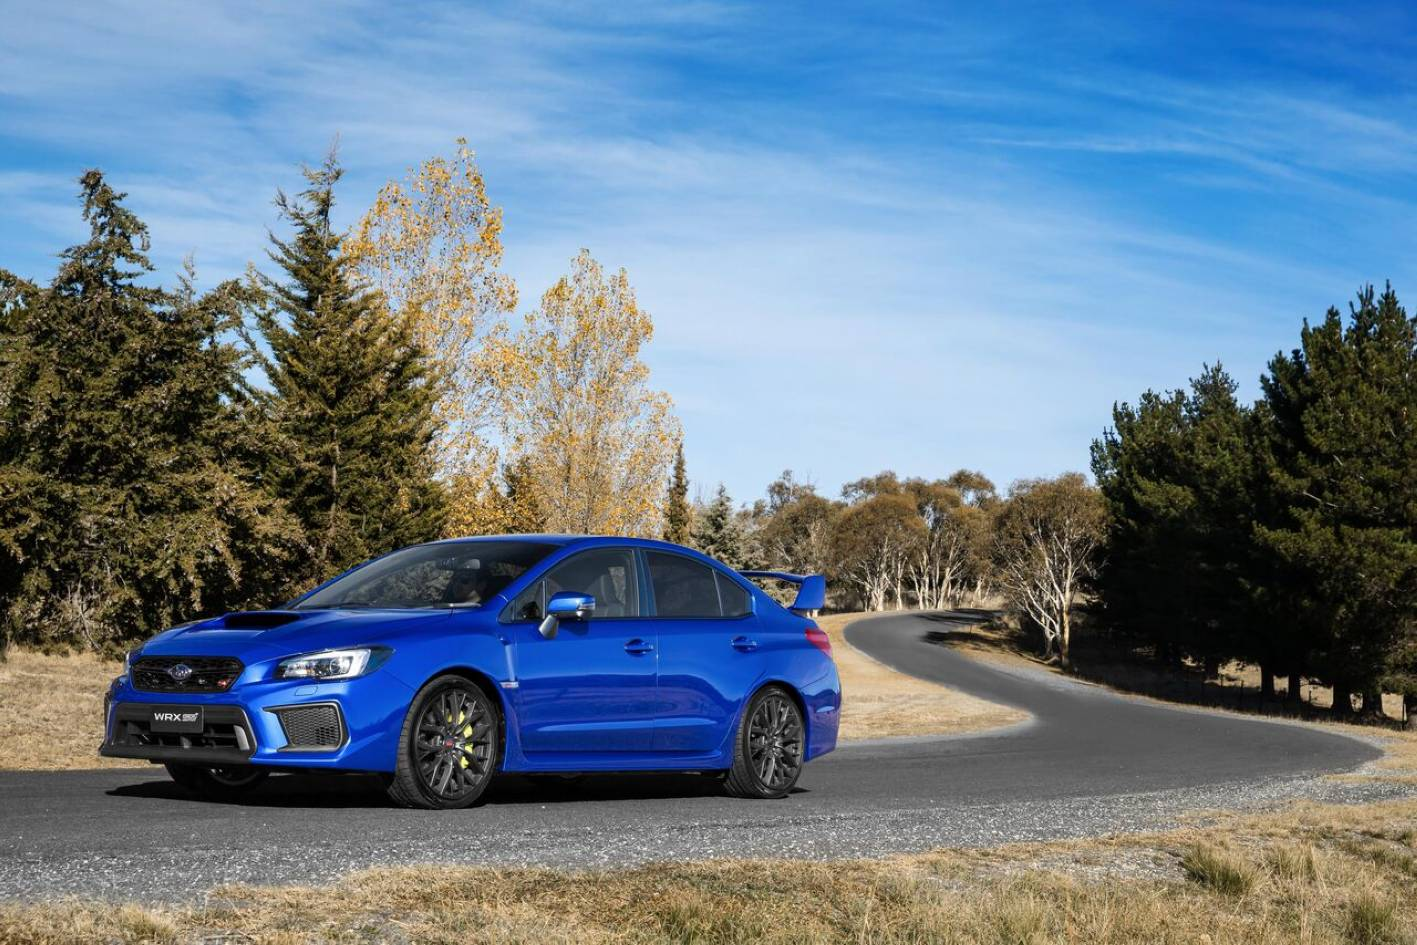 STI has the bragging rights - but many buyers would have their objective needs met by a notionally 'lesser' WRX